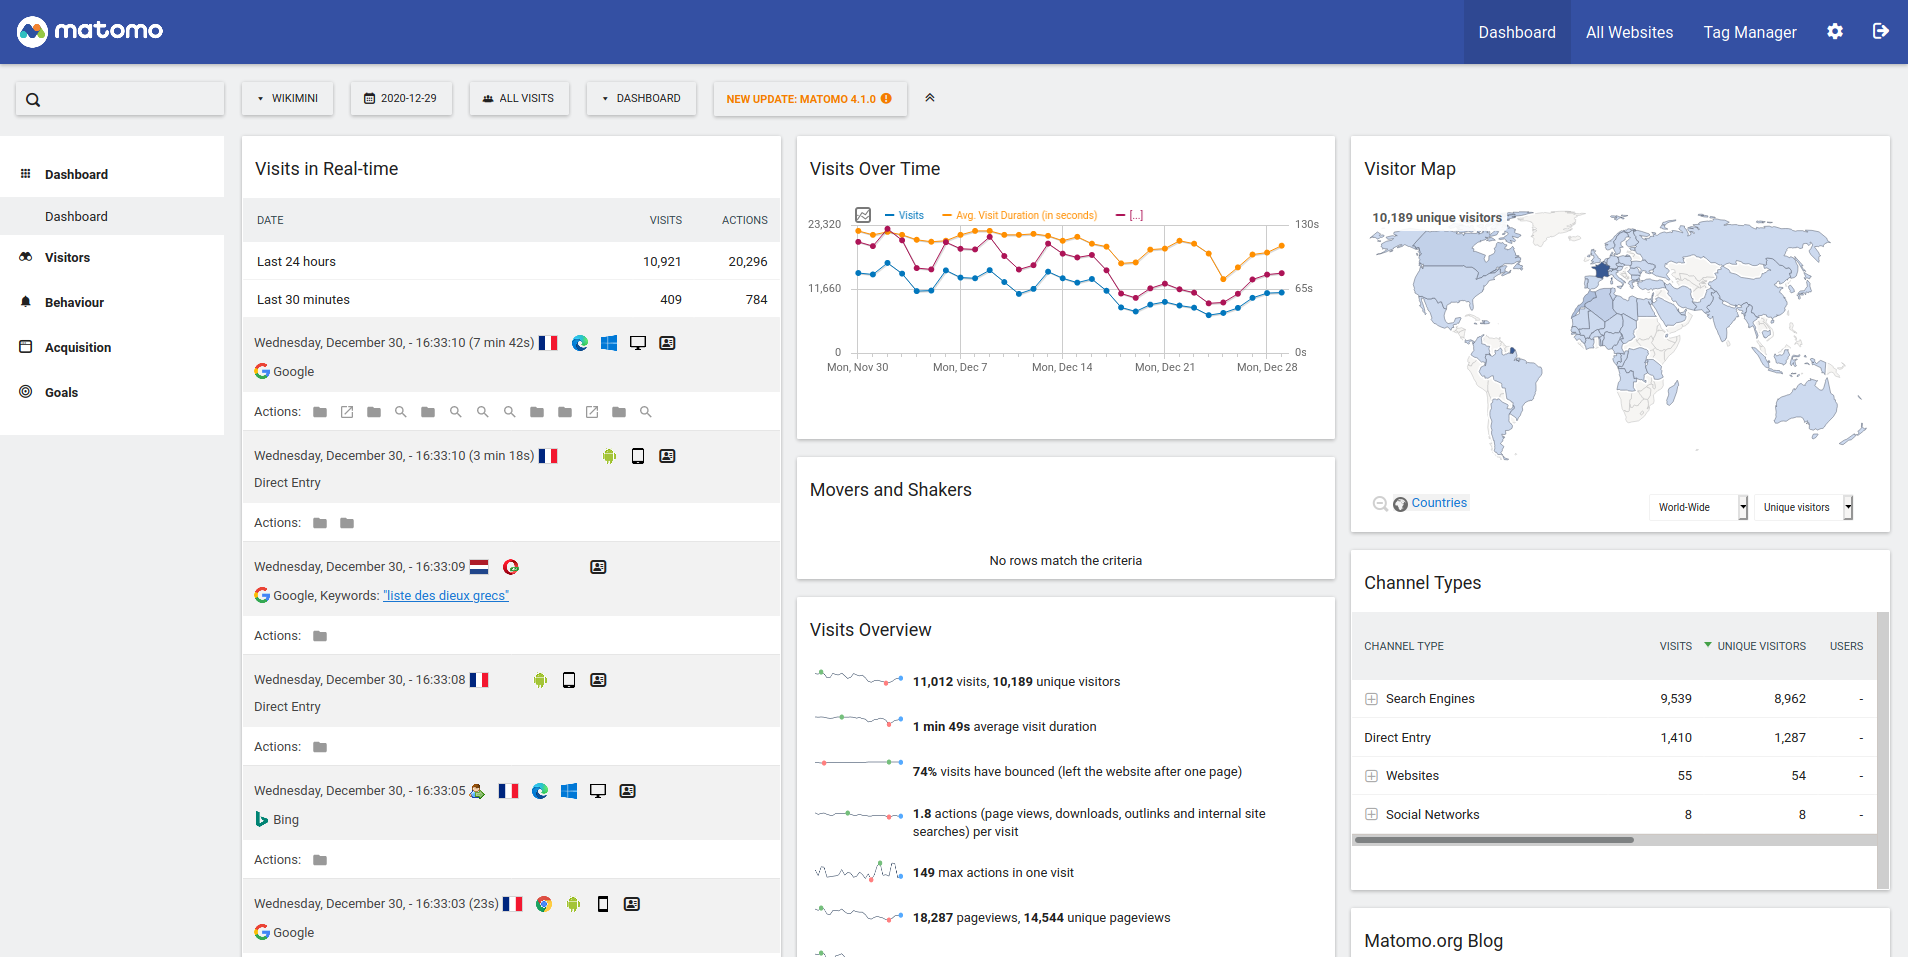 Matomo's Dashboard view that have been customized to display relevant widgets